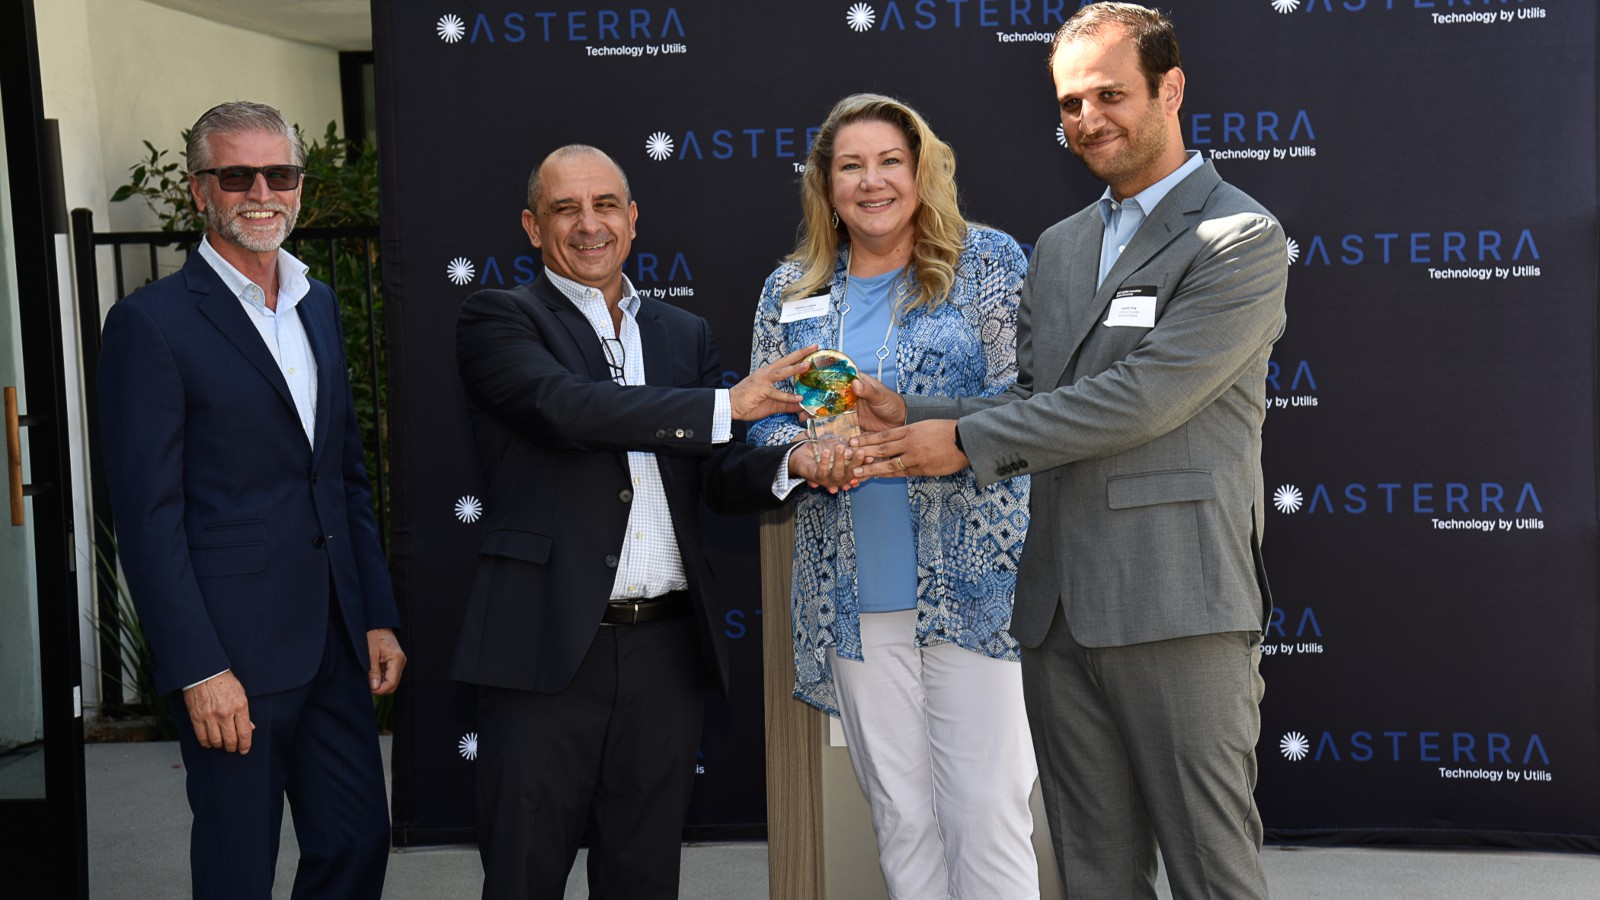 <p>From left, Asterra VP-business development James Perry; Asterra CEO Elly Perets; AWWA VP Heather Collins; and Utilis/Asterra CTO and co-founder Lauren Guy. (Asterra)</p>